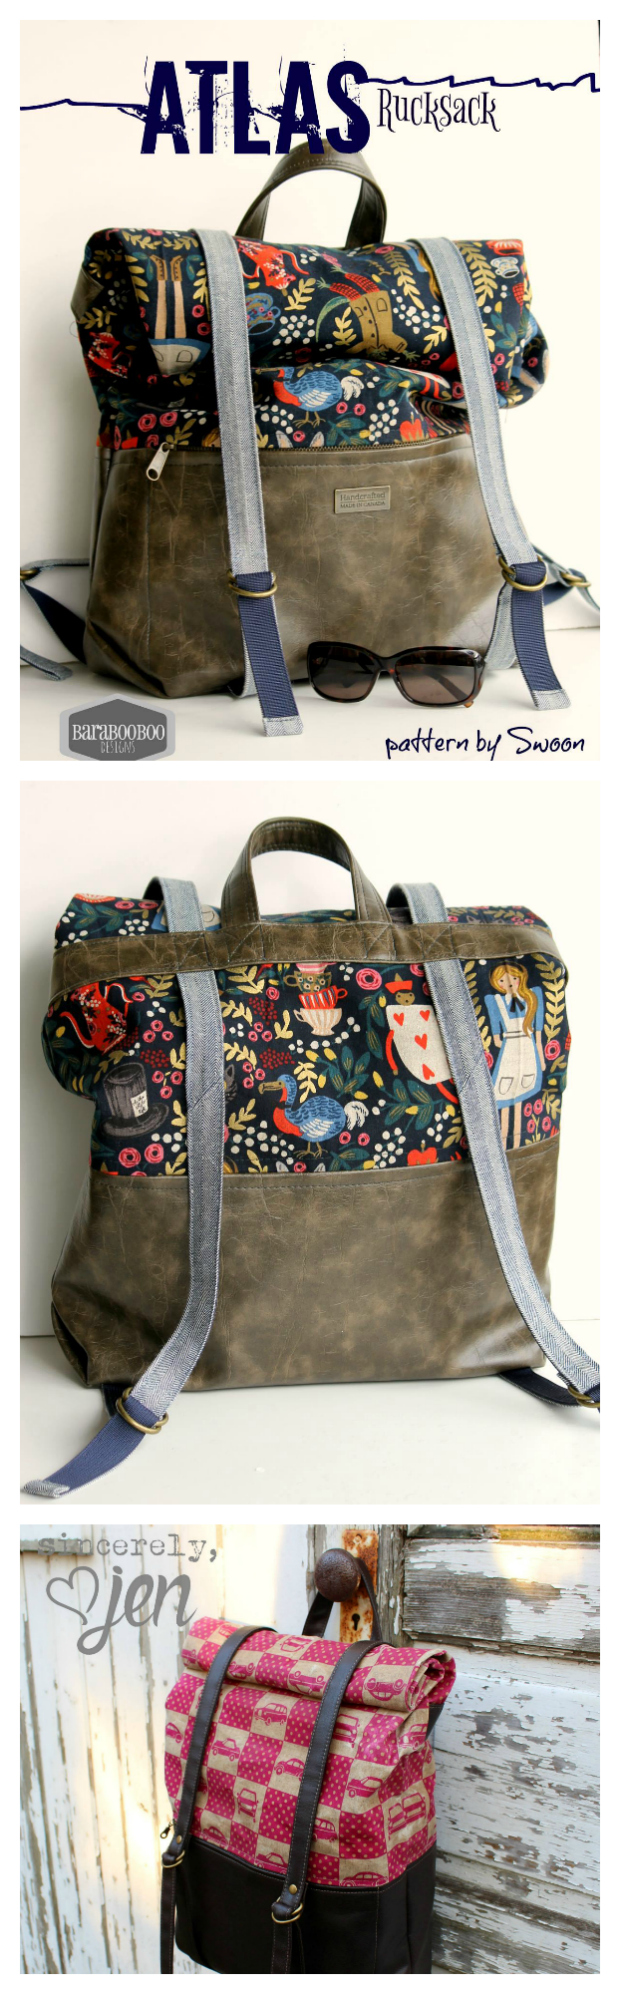 If you want to make a rucksack (backpack) then the PDF downloadable sewing pattern for The Atlas Rucksack is the one to chose. This unisex design can be made in any style you prefer. It features adjustable backpack straps and front closure straps, as well as a large front zippered pocket and top carrying/hanging handle. And the end result is a rucksack that is wonderfully comfortable as well as expandable and fully adjustable.